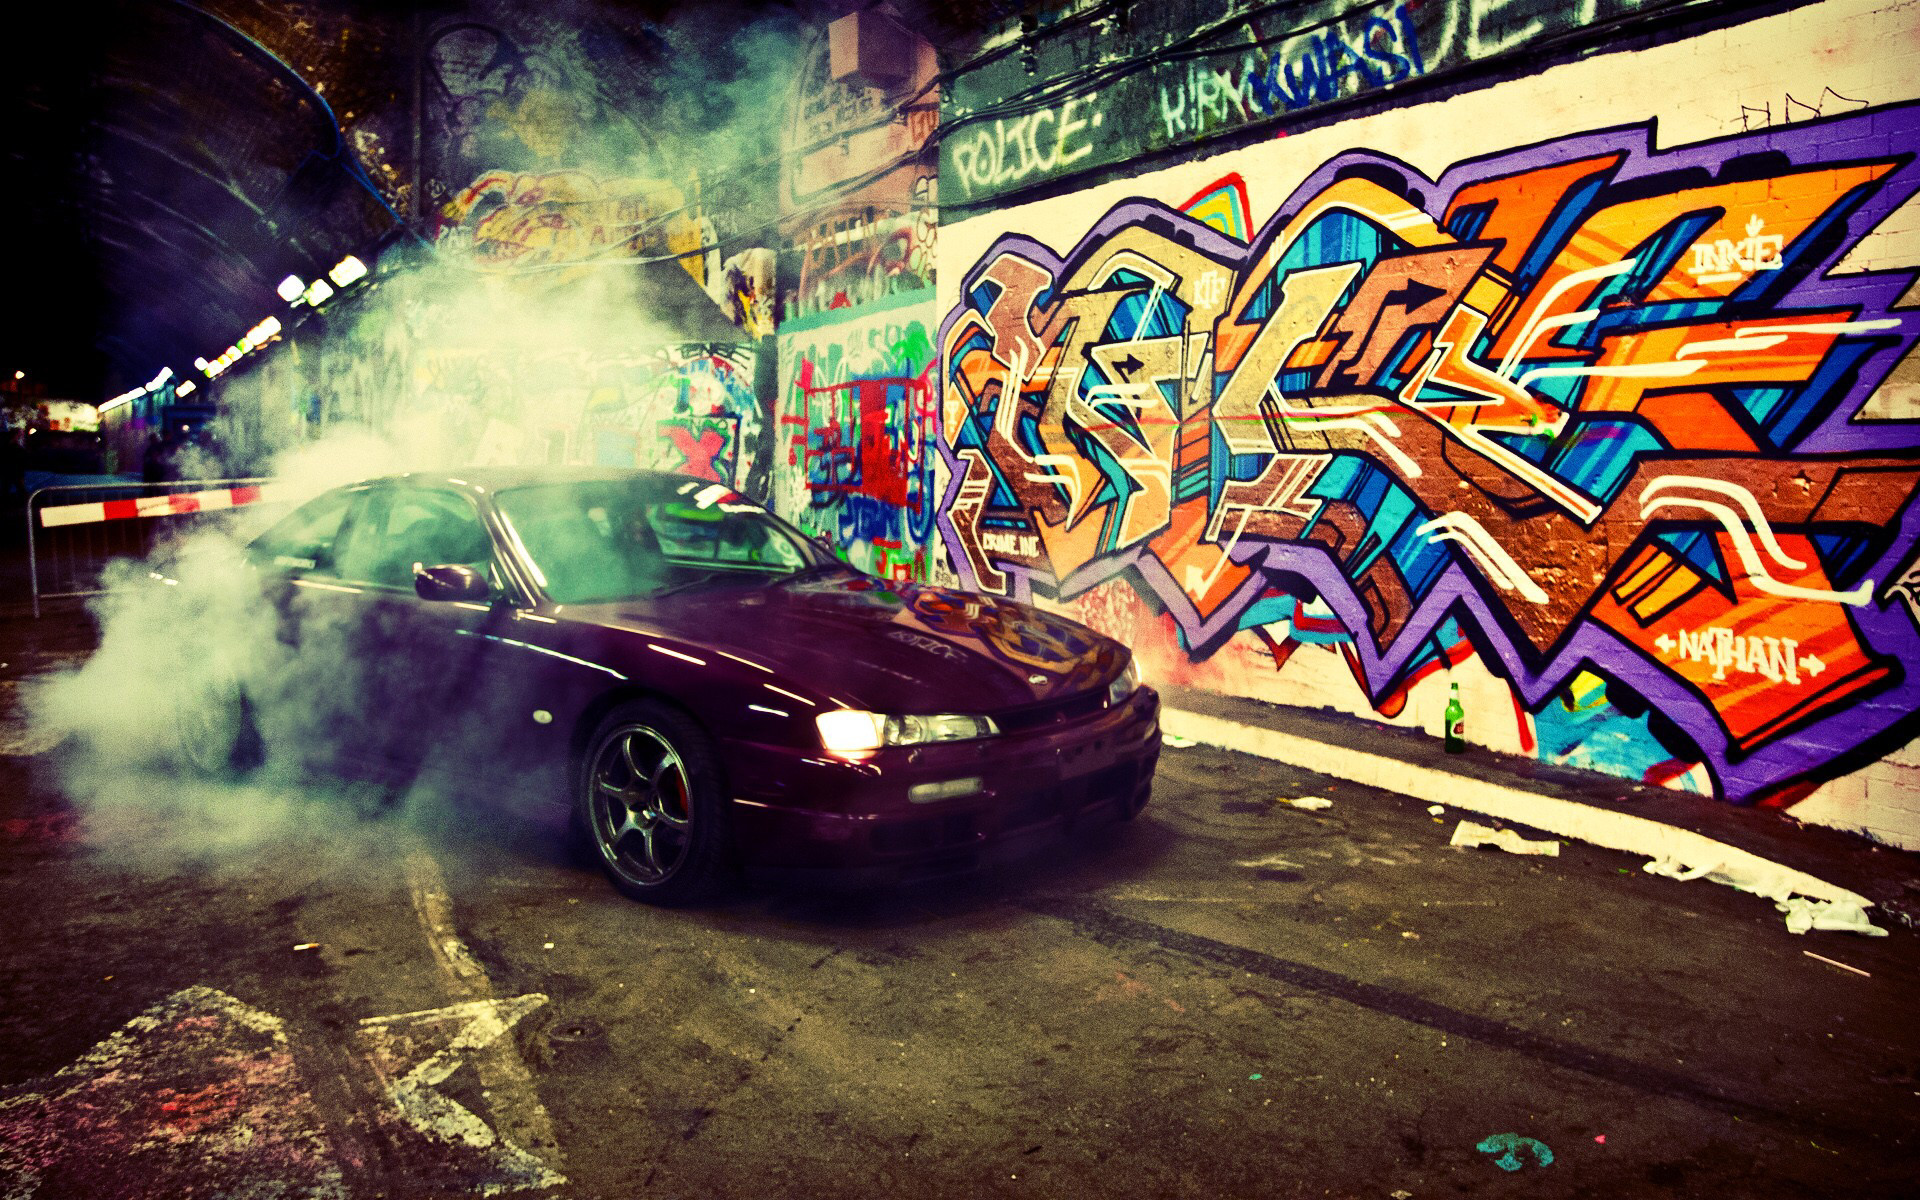 Res: 1920x1200, ... from http://www.walldevil.com/wallpapers /w03/941387-burnout-cars-graffiti-jdm-japanese-domestic-market-nissan-silvia-s14-smoke-underground-vehicles.jpg.